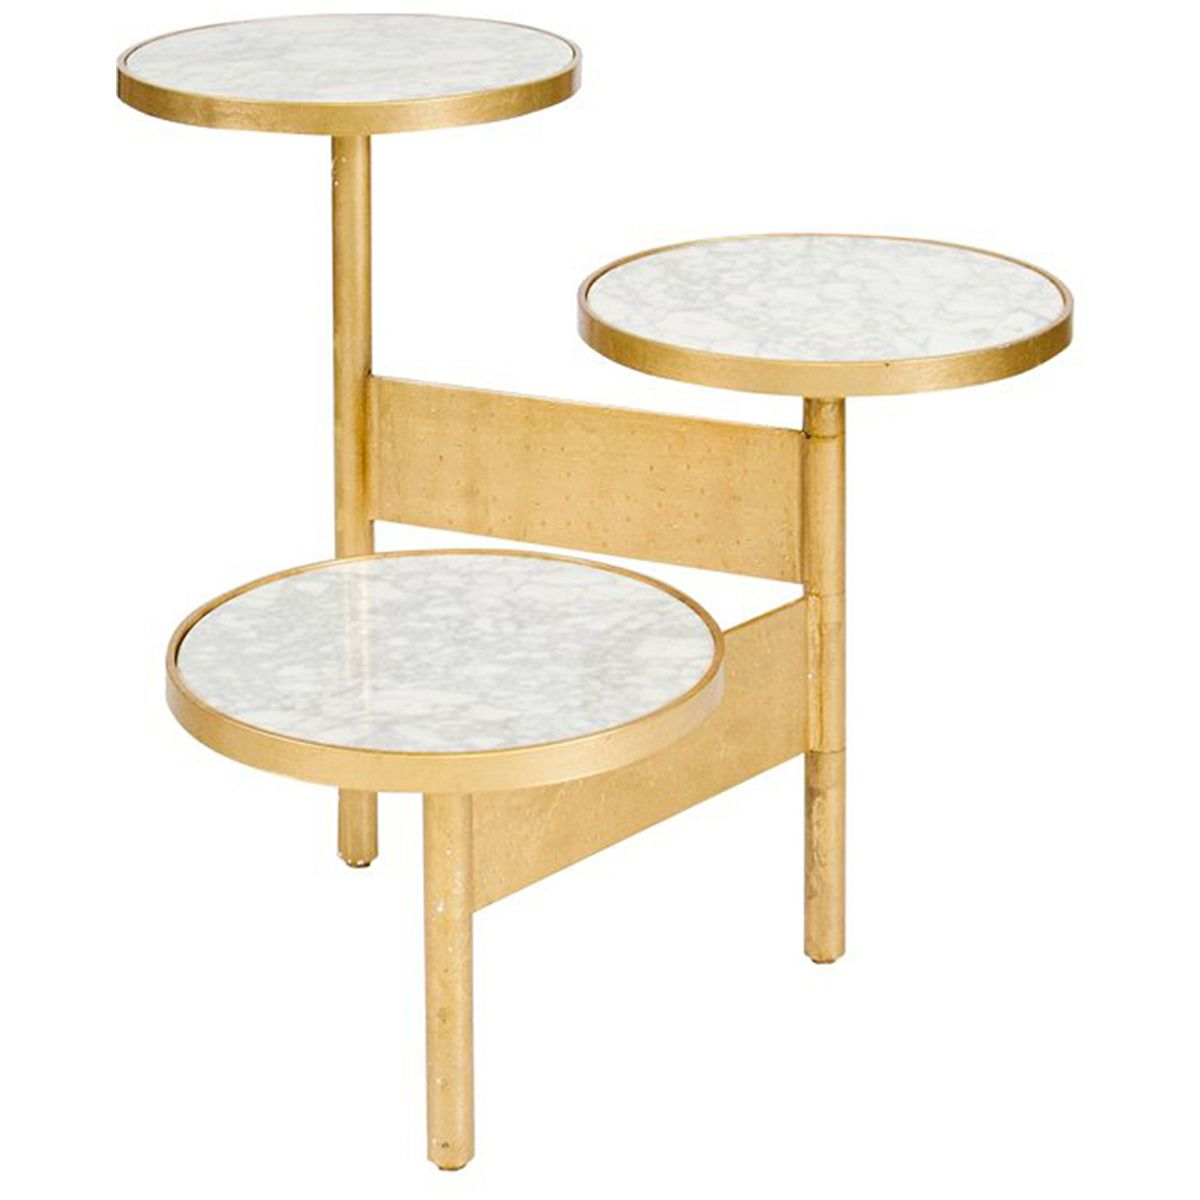 Worlds Away Colin 3 Tier Hinged Table Gold Leaf